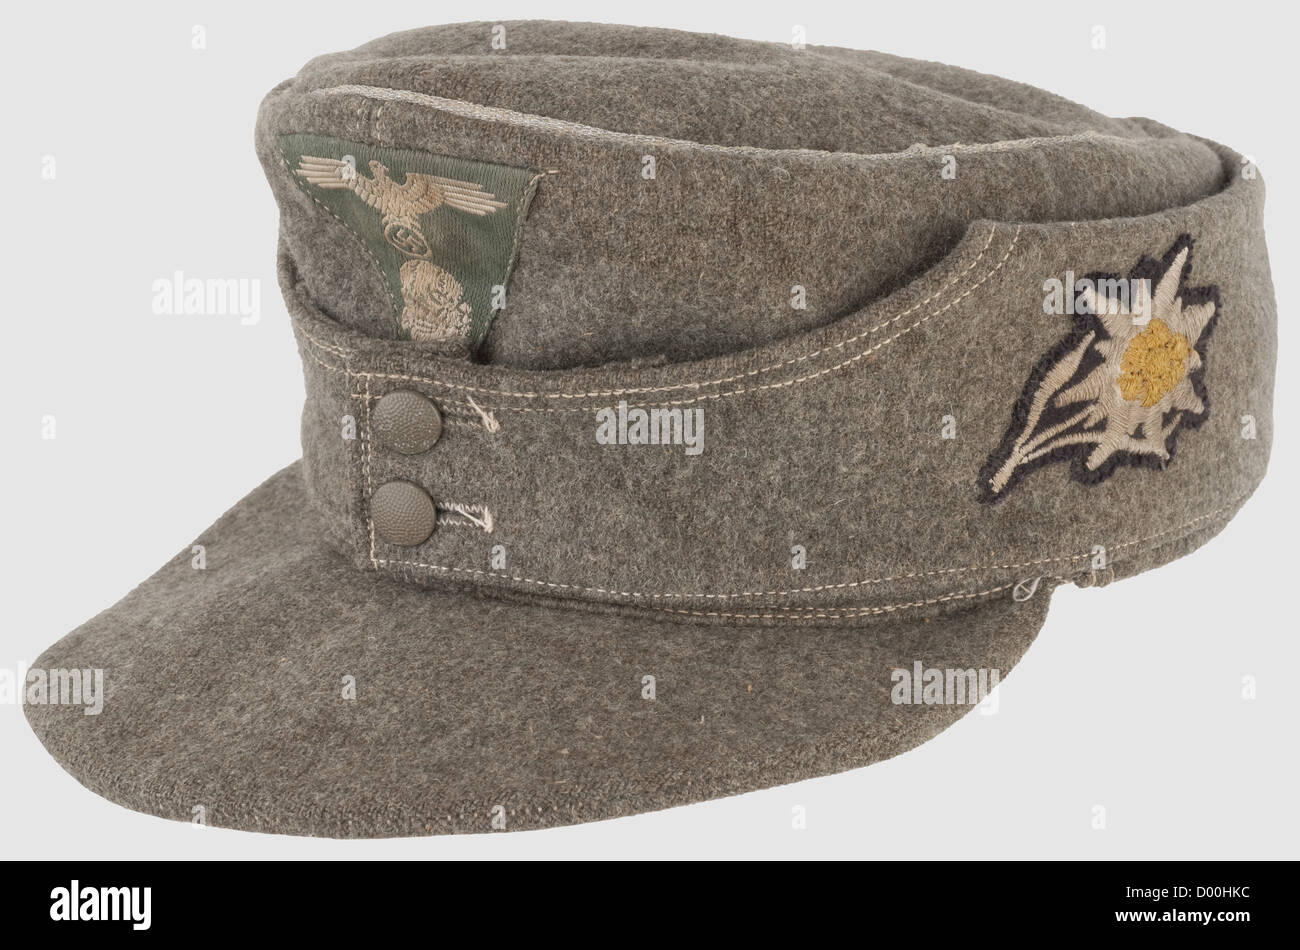 Peaked Hats Immagini   Peaked Hats Fotos Stock - Alamy 2be52a6a81b8